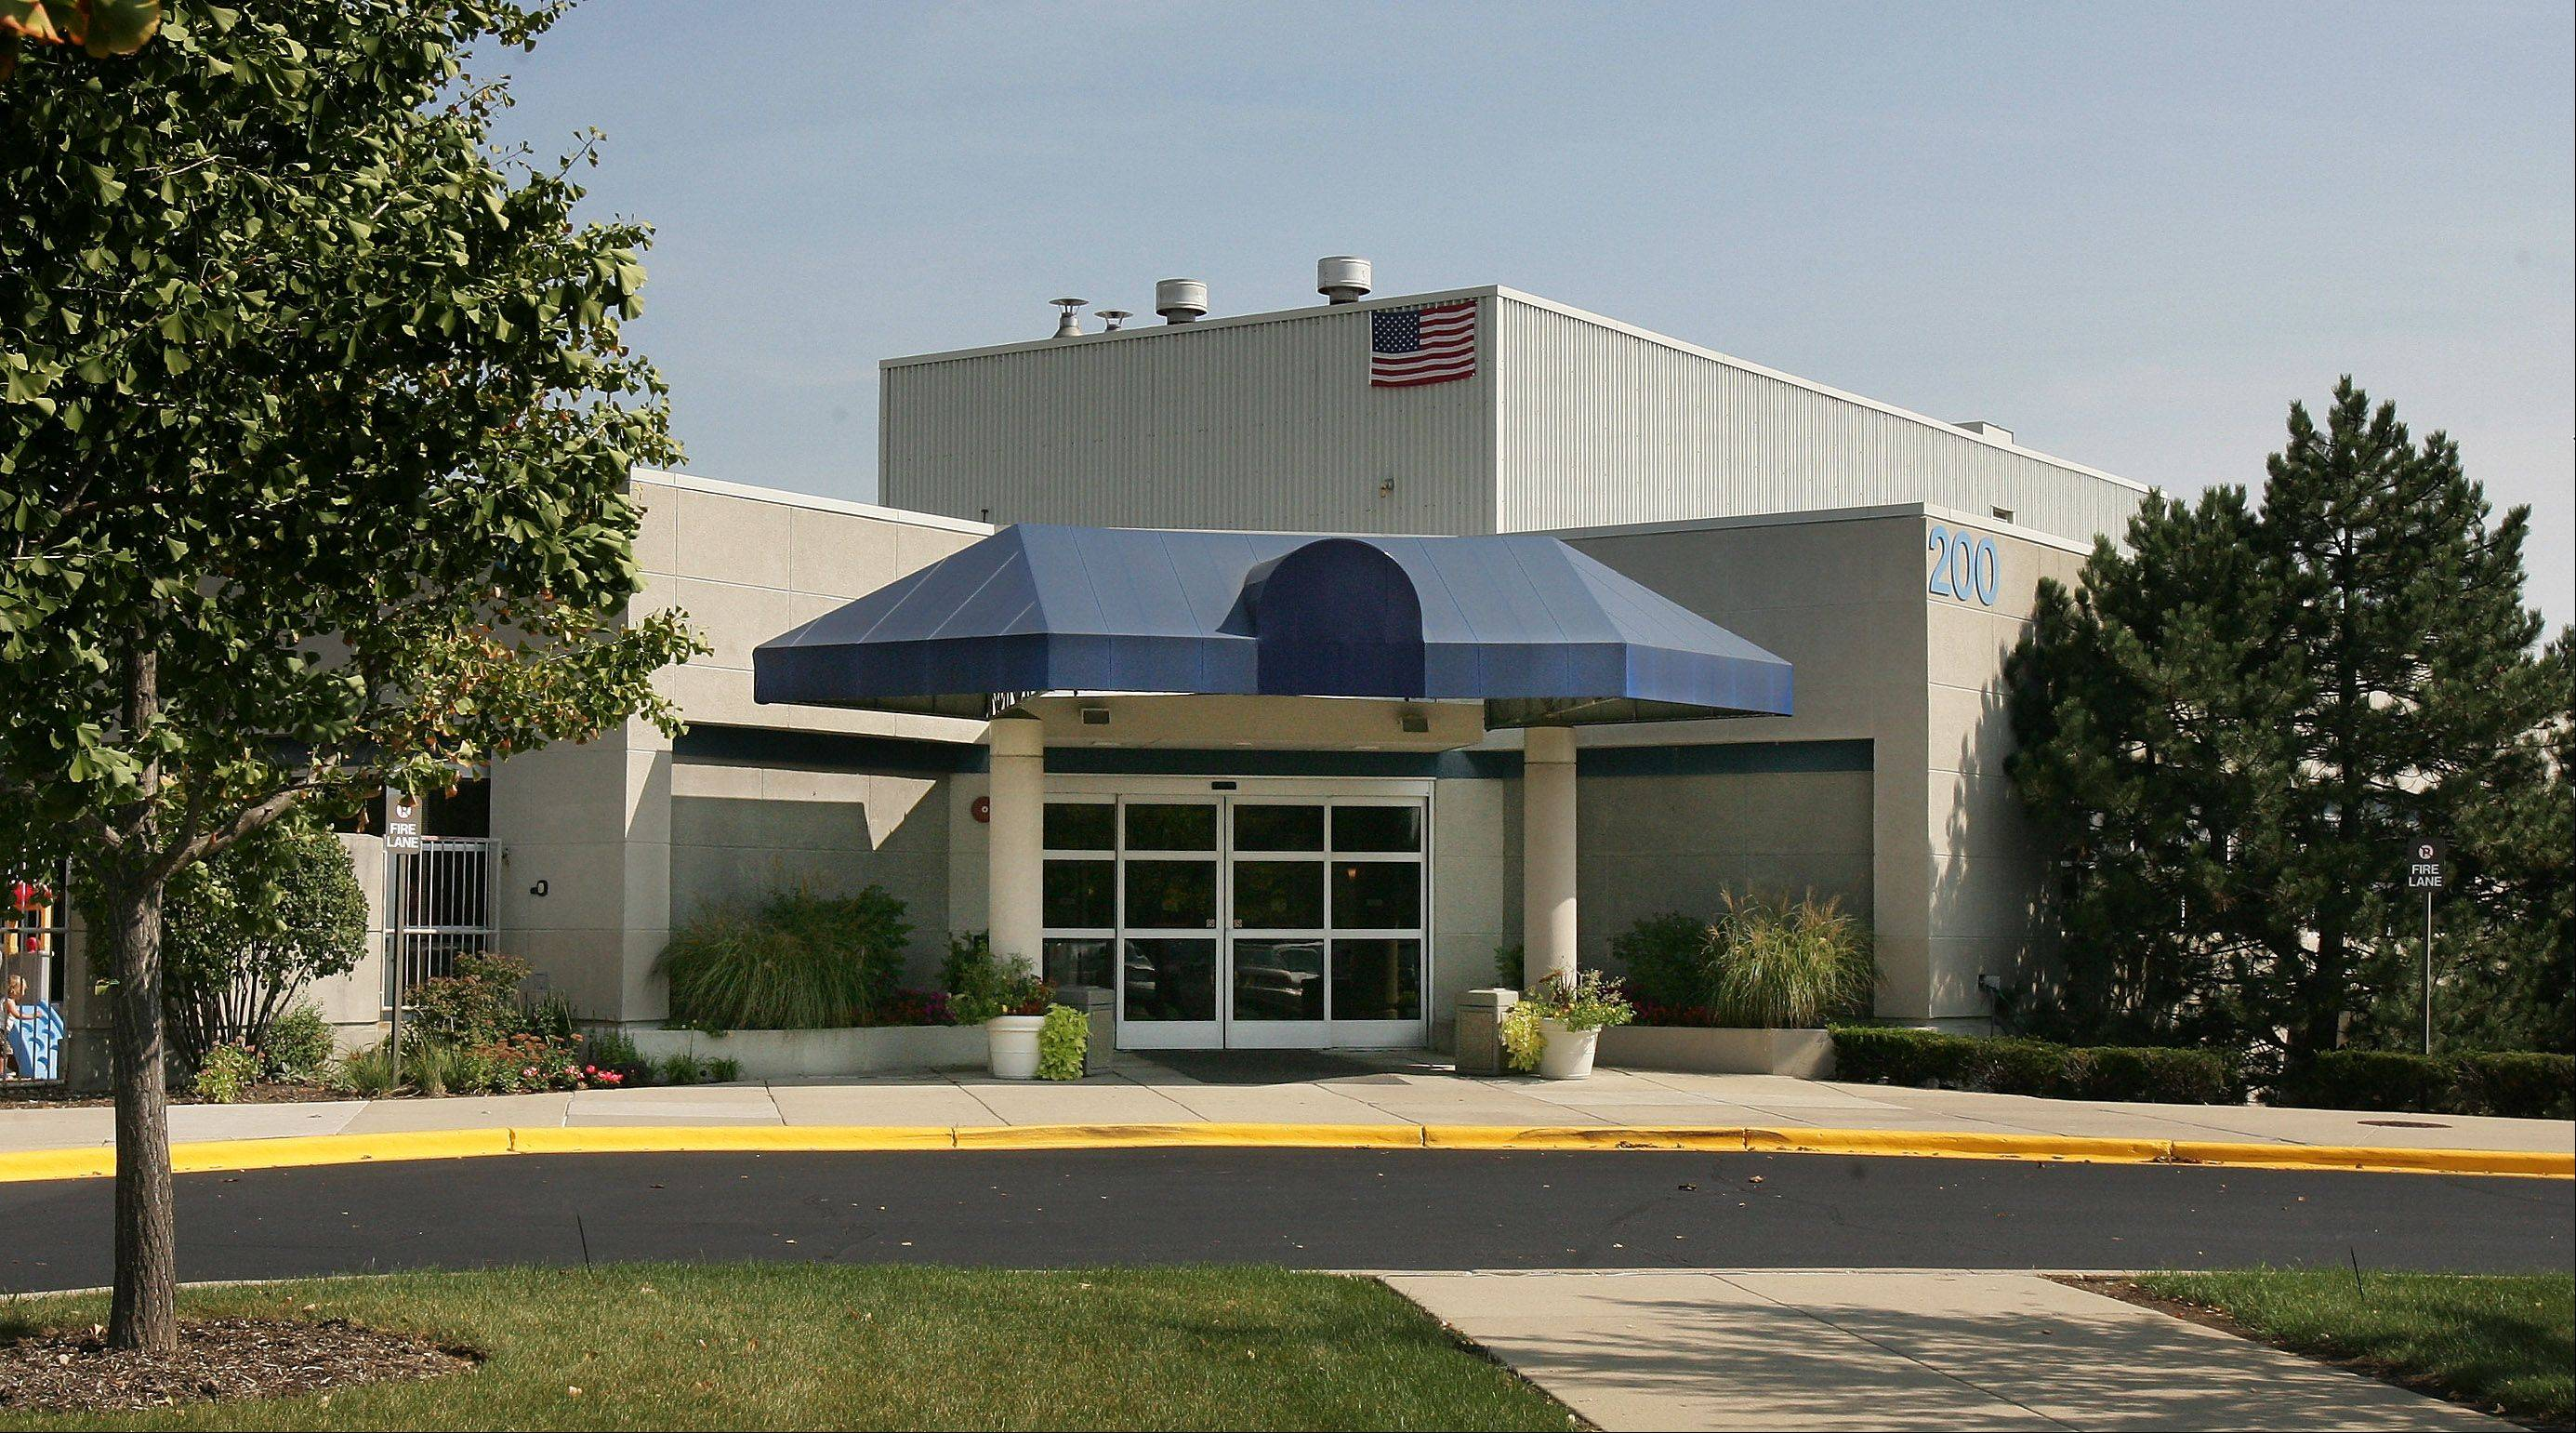 Advocate Condell Medical Center in Libertyville.